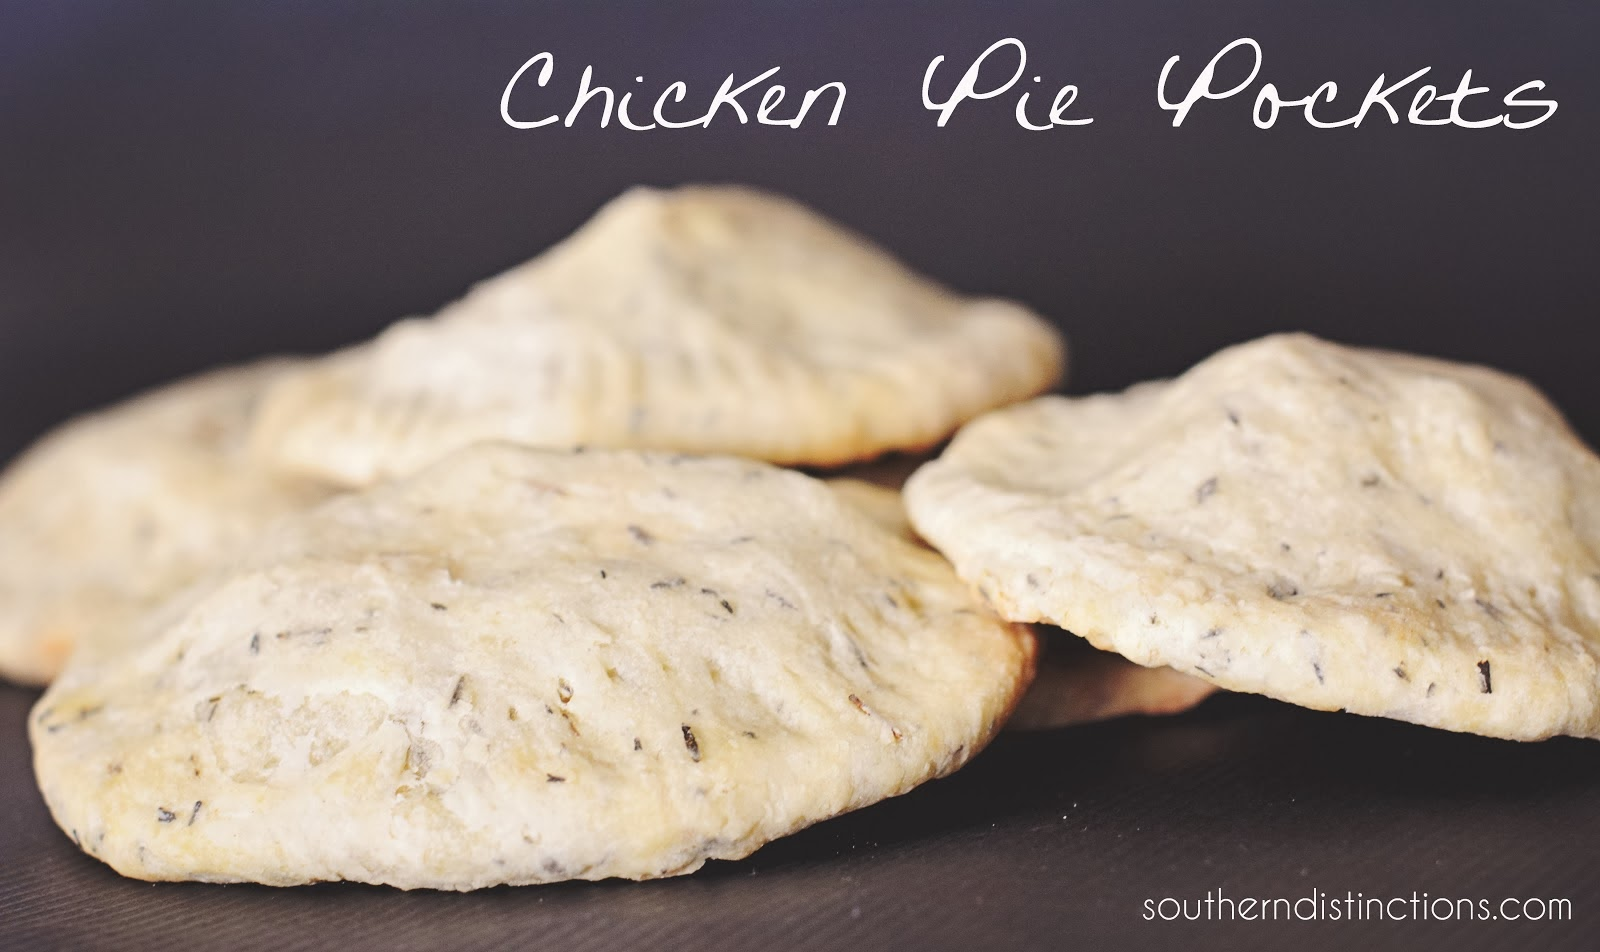 http://www.southerndistinctions.com/2014/01/chicken-pie-pockets.html